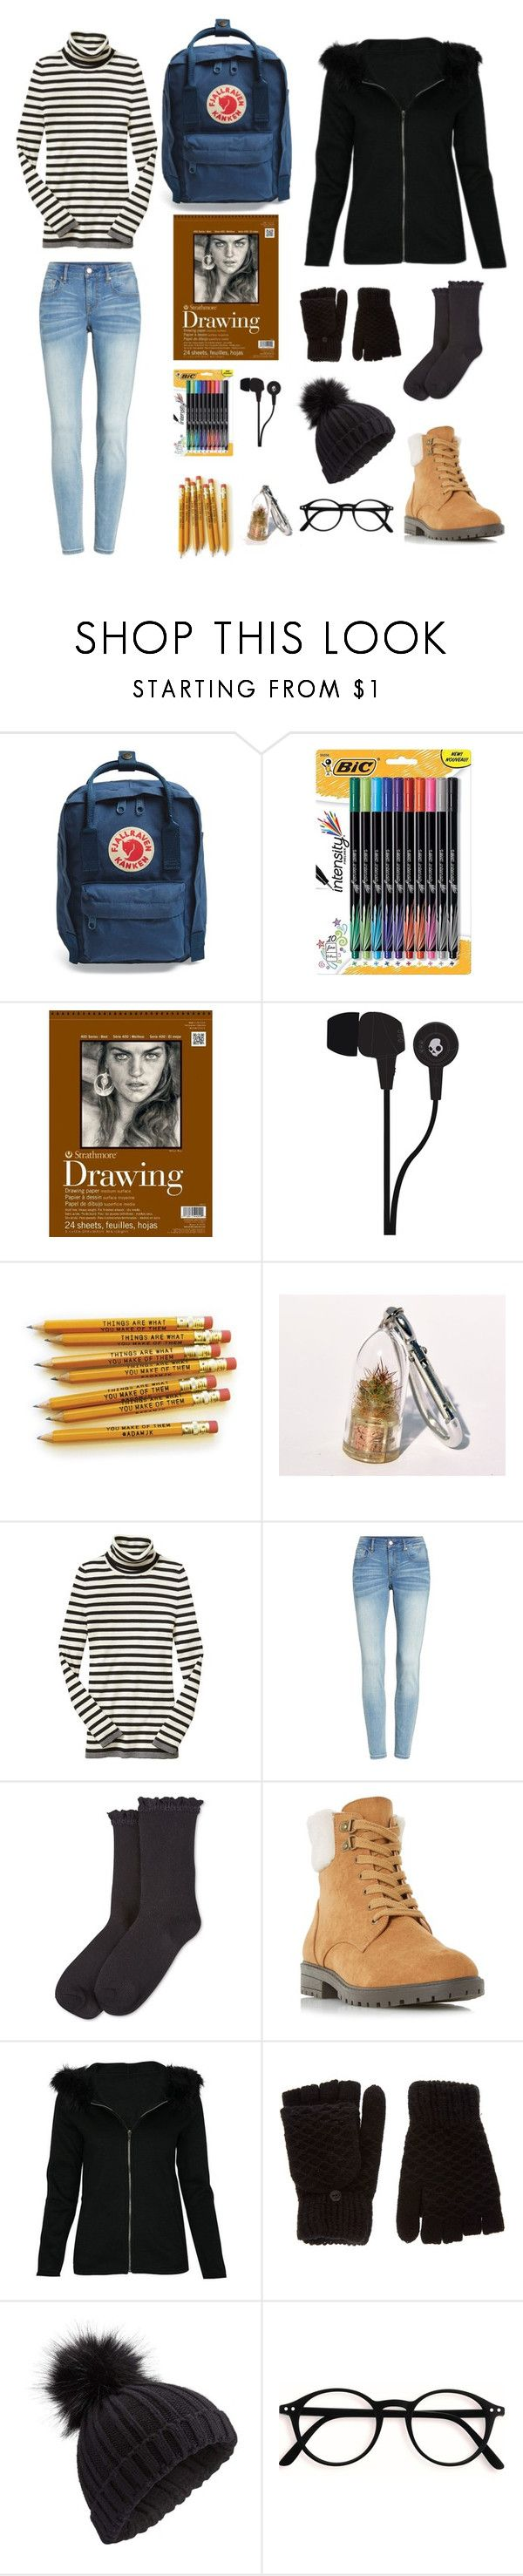 """""""We Have Nothing to Lose and a World to See"""" by riley-specht ❤ liked on Polyvore featuring Fjällräven, CO, Skullcandy, Gap, Vigoss, HUE, Head Over Heels, Miss Selfridge, women and polyvorefashion"""